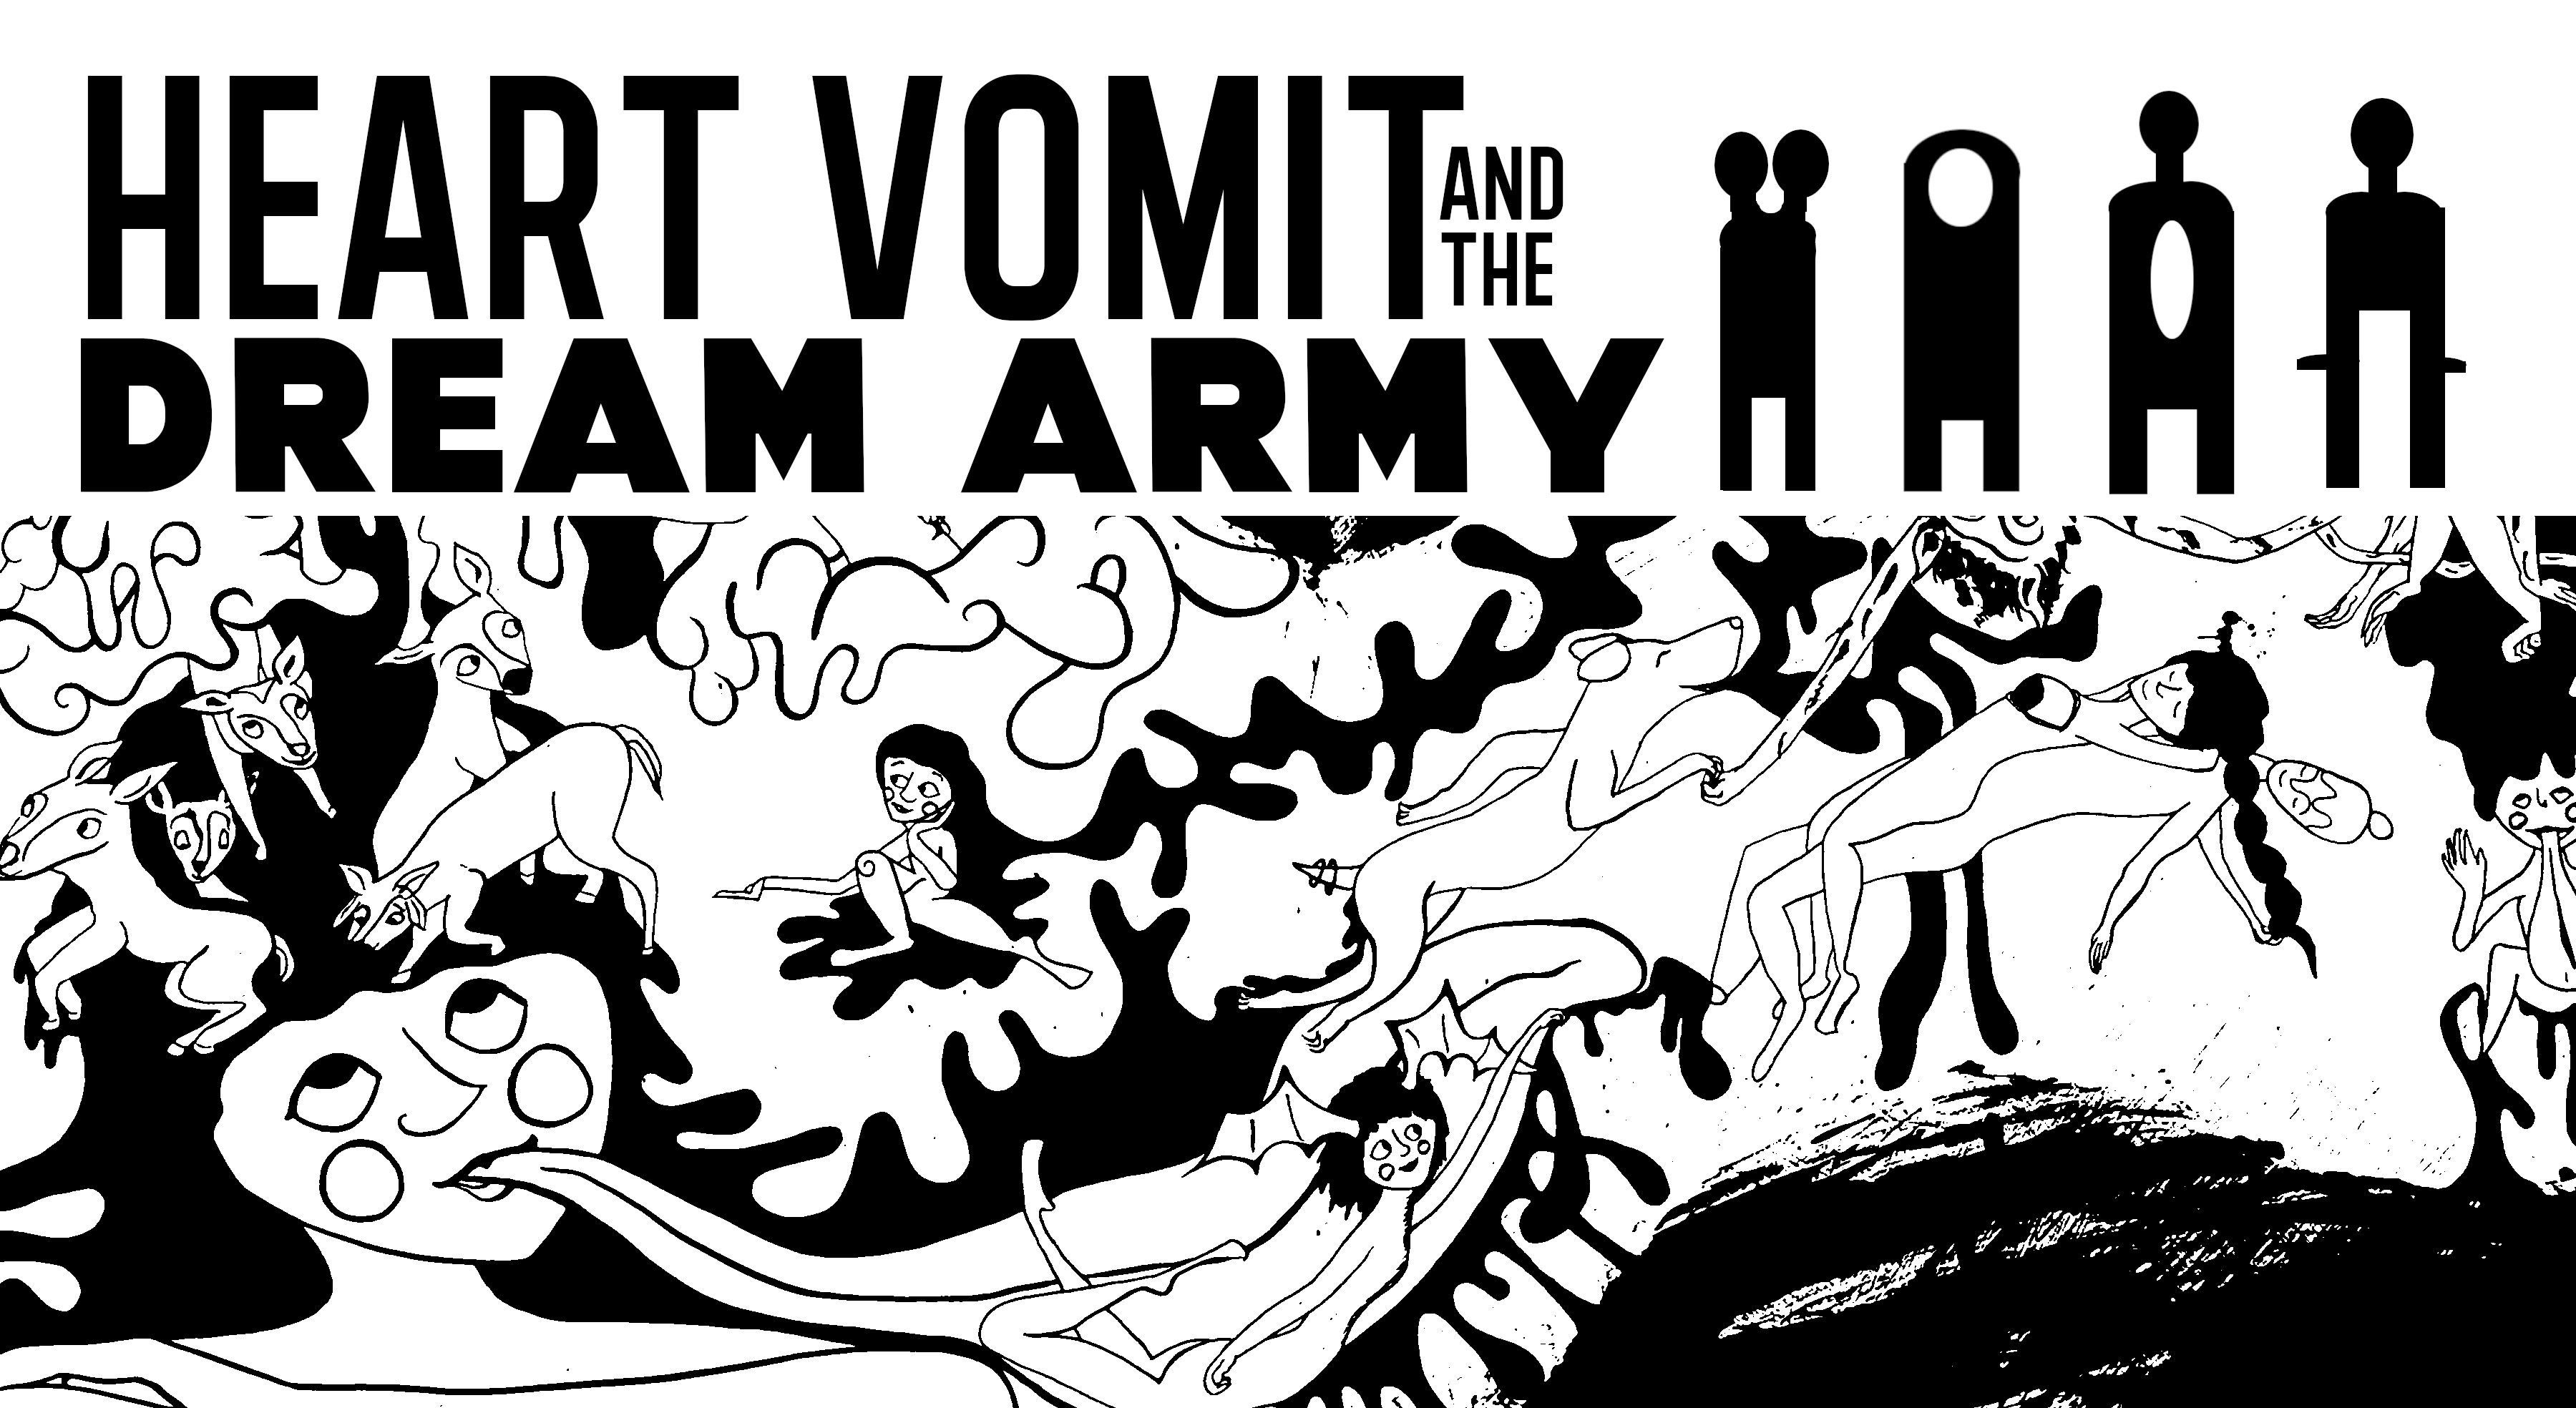 Heart Vomit and the Dream Army: Michelle Postma MFA Thesis Exhibition in the Main Gallery